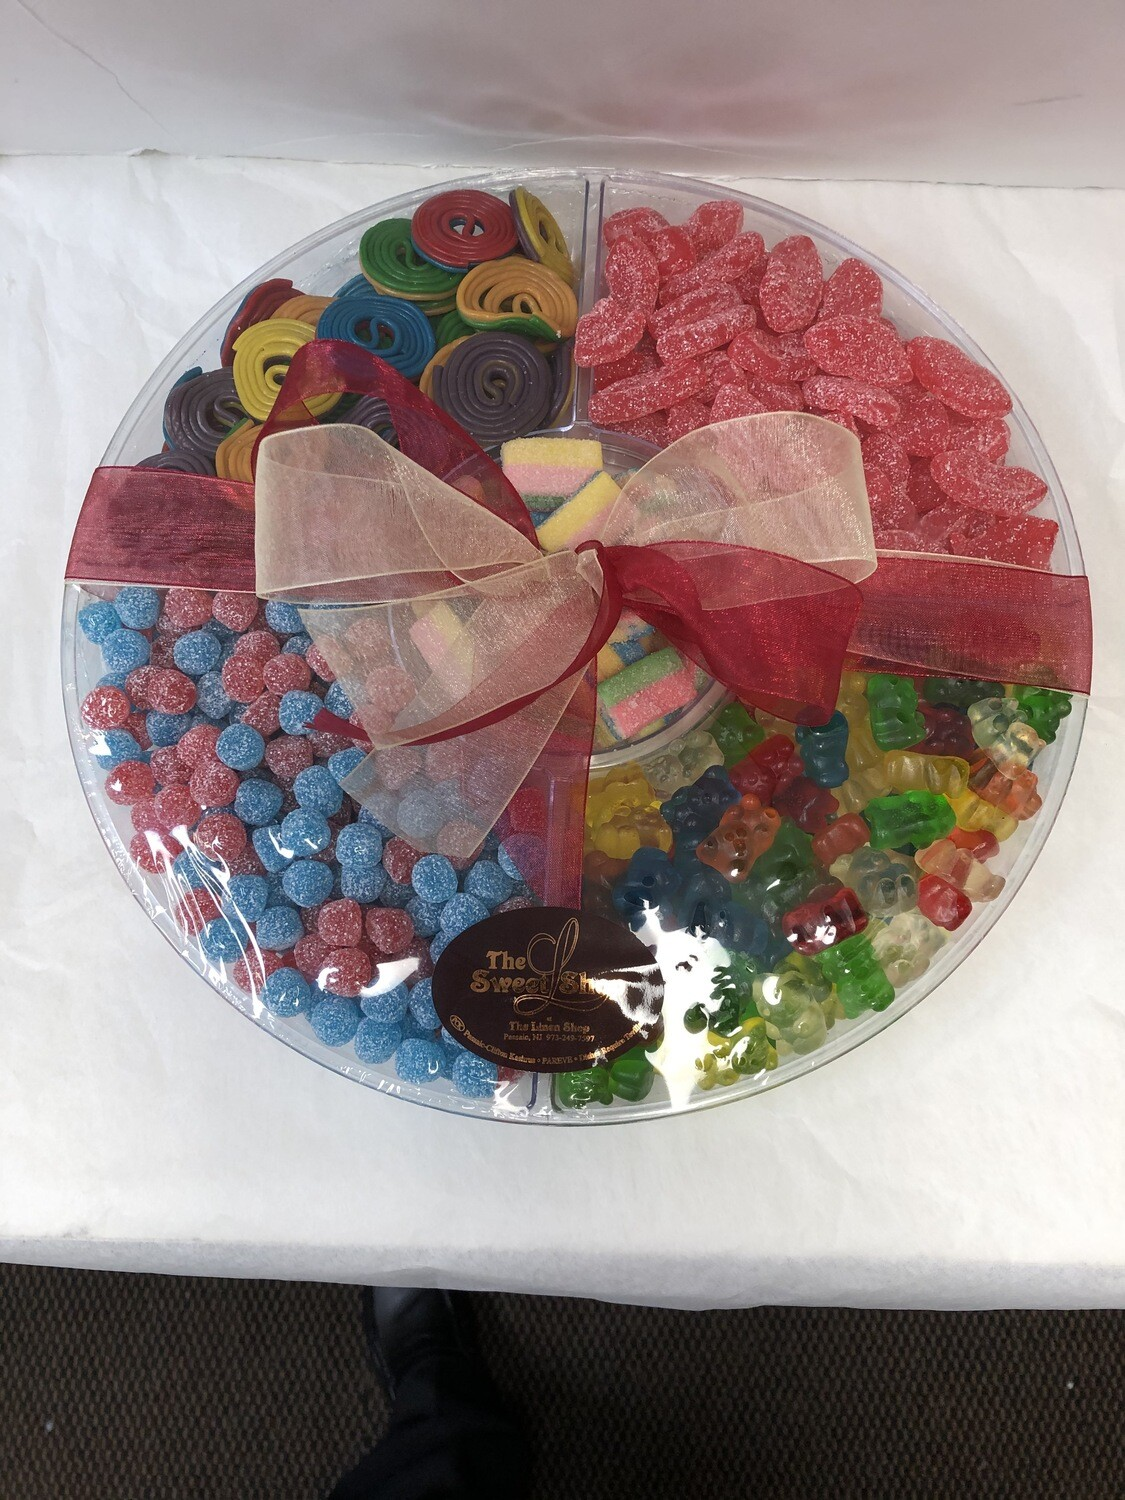 Deluxe Candy Platter